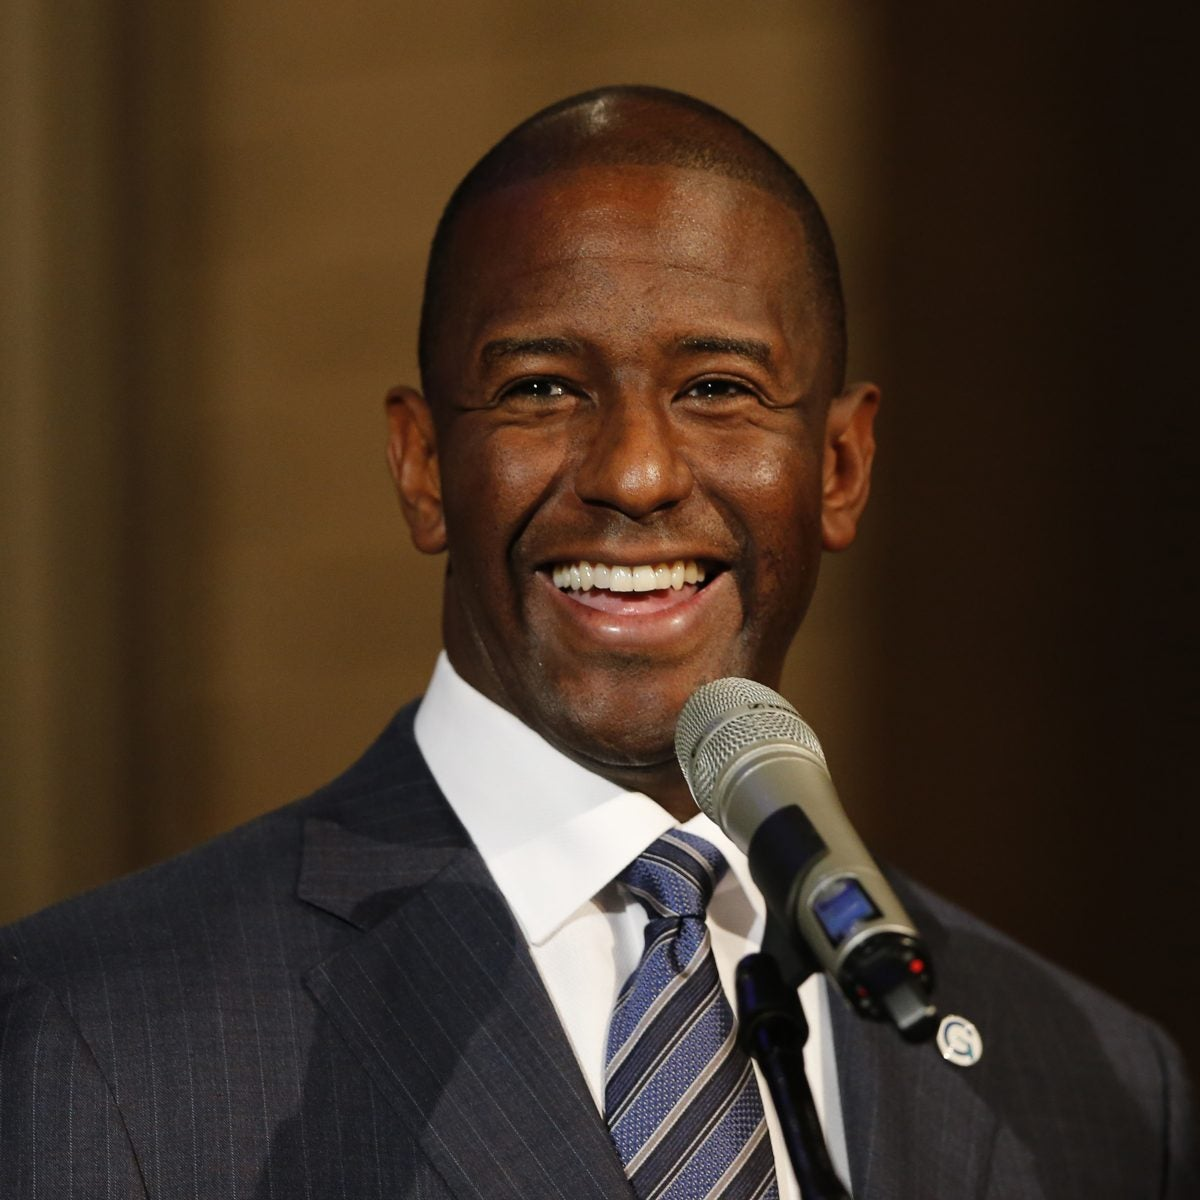 Andrew Gillum Speaks Out For First Time Since Withdrawing From Public Life